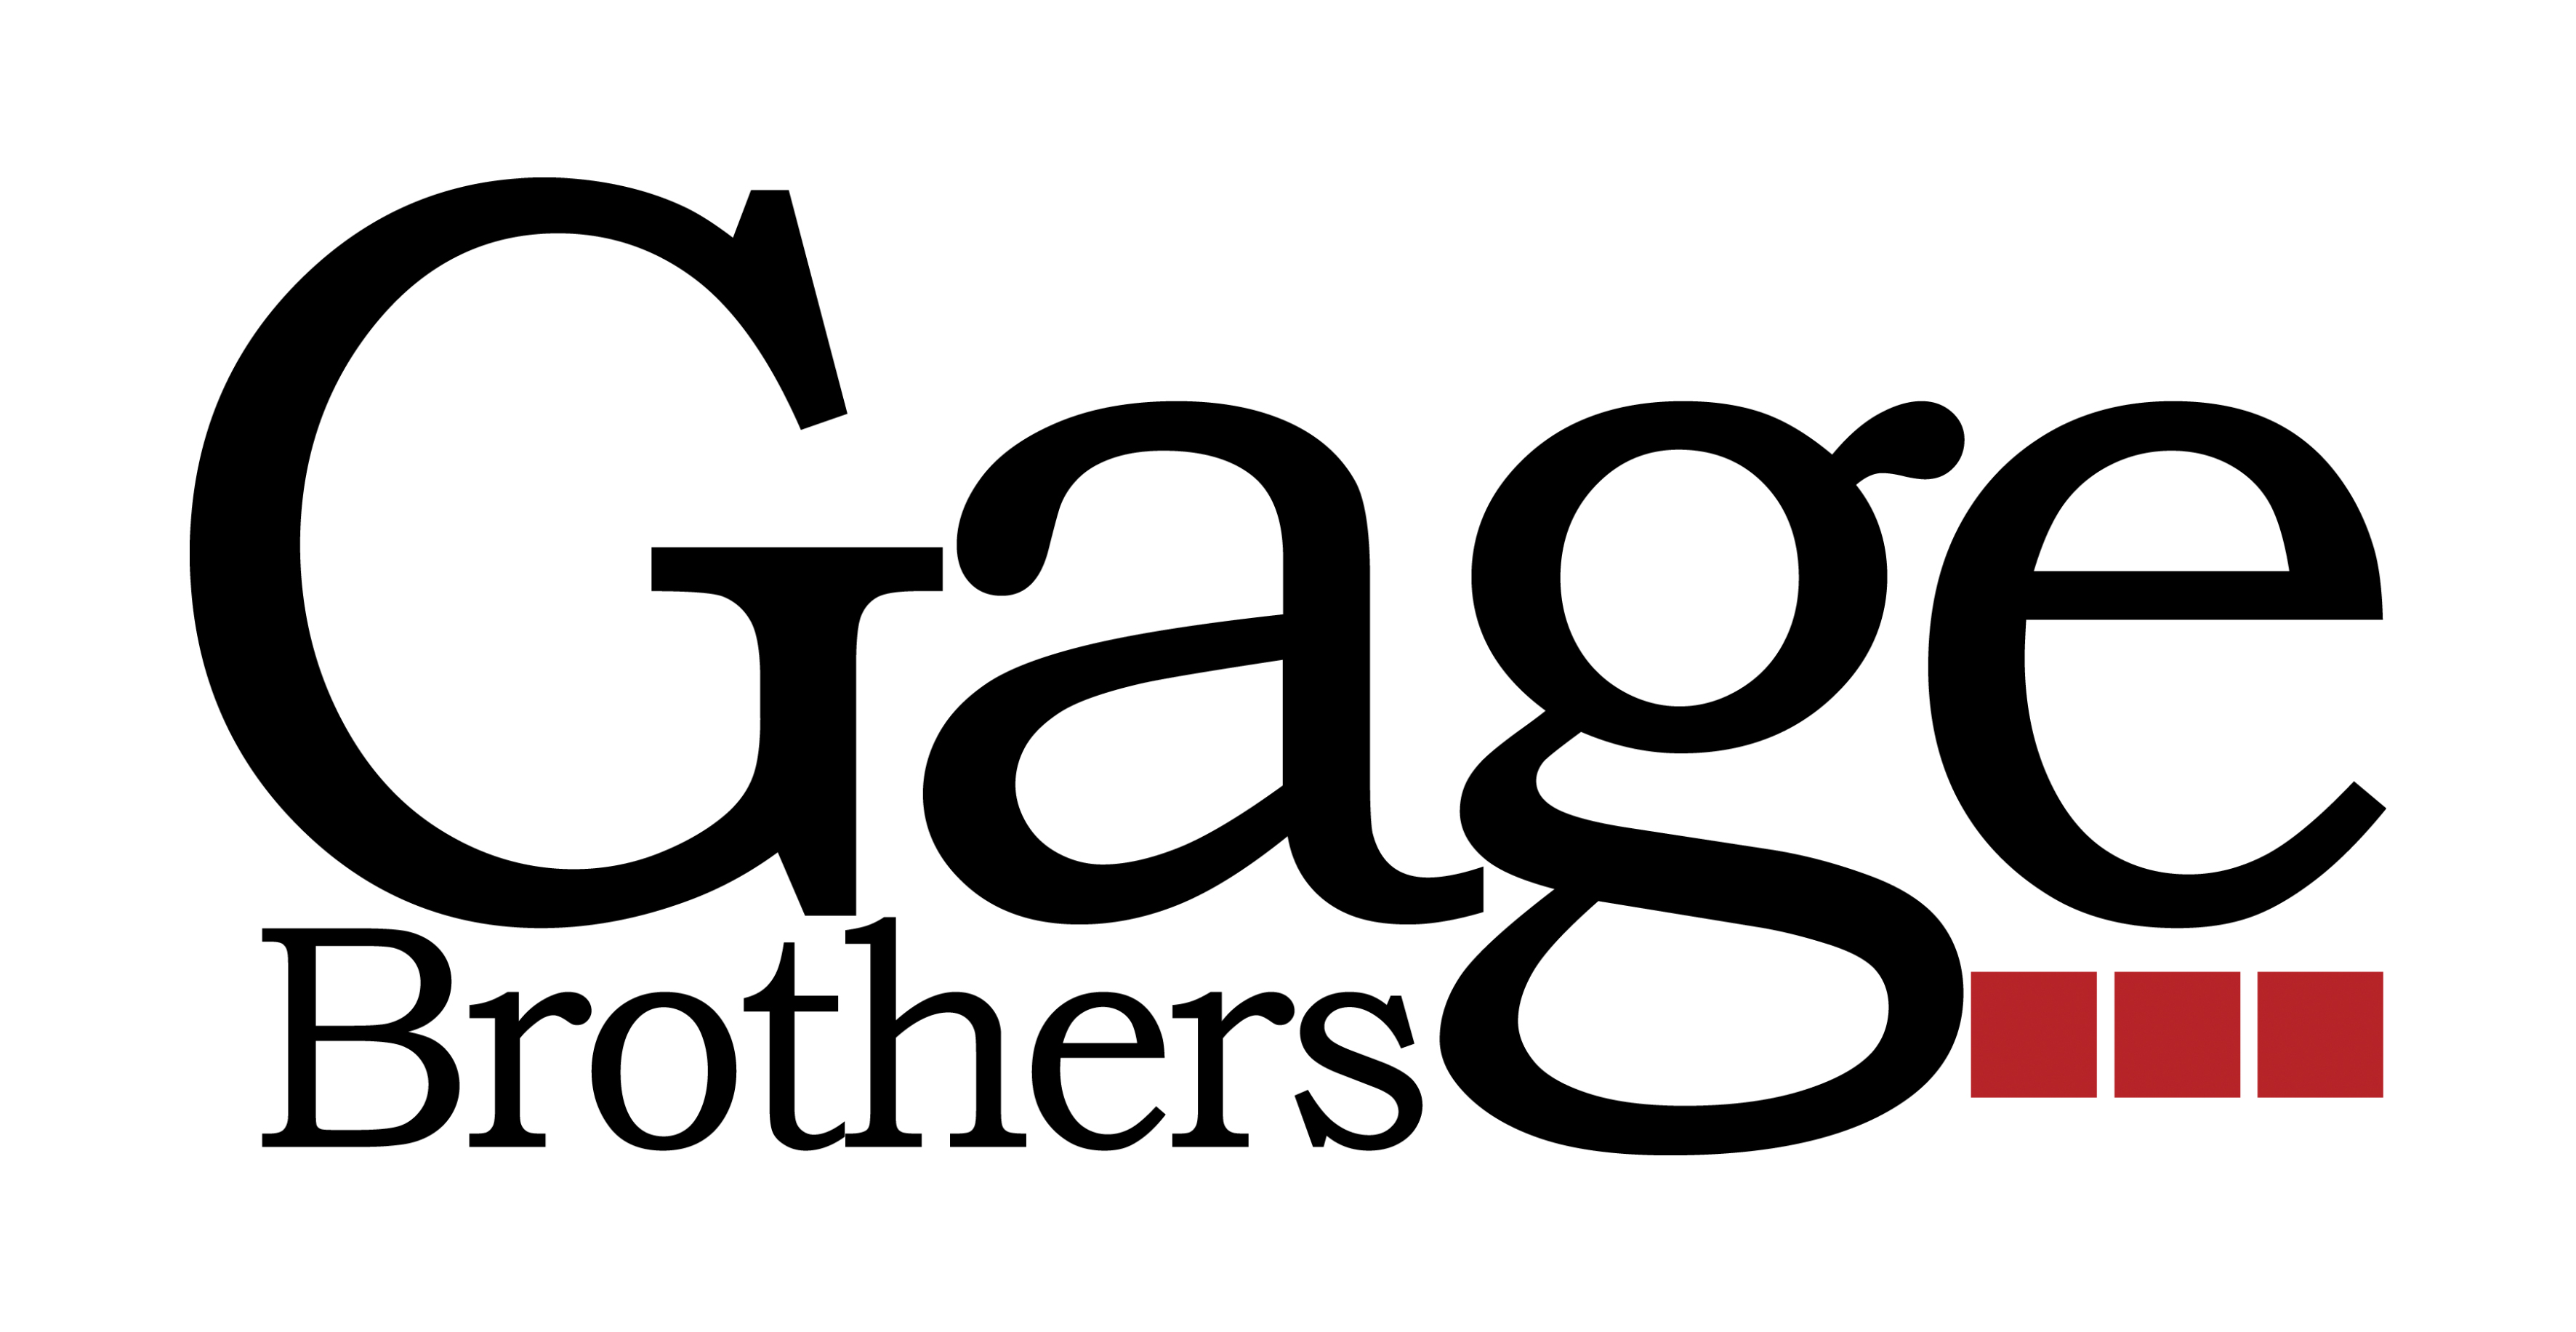 Gage brothers logo